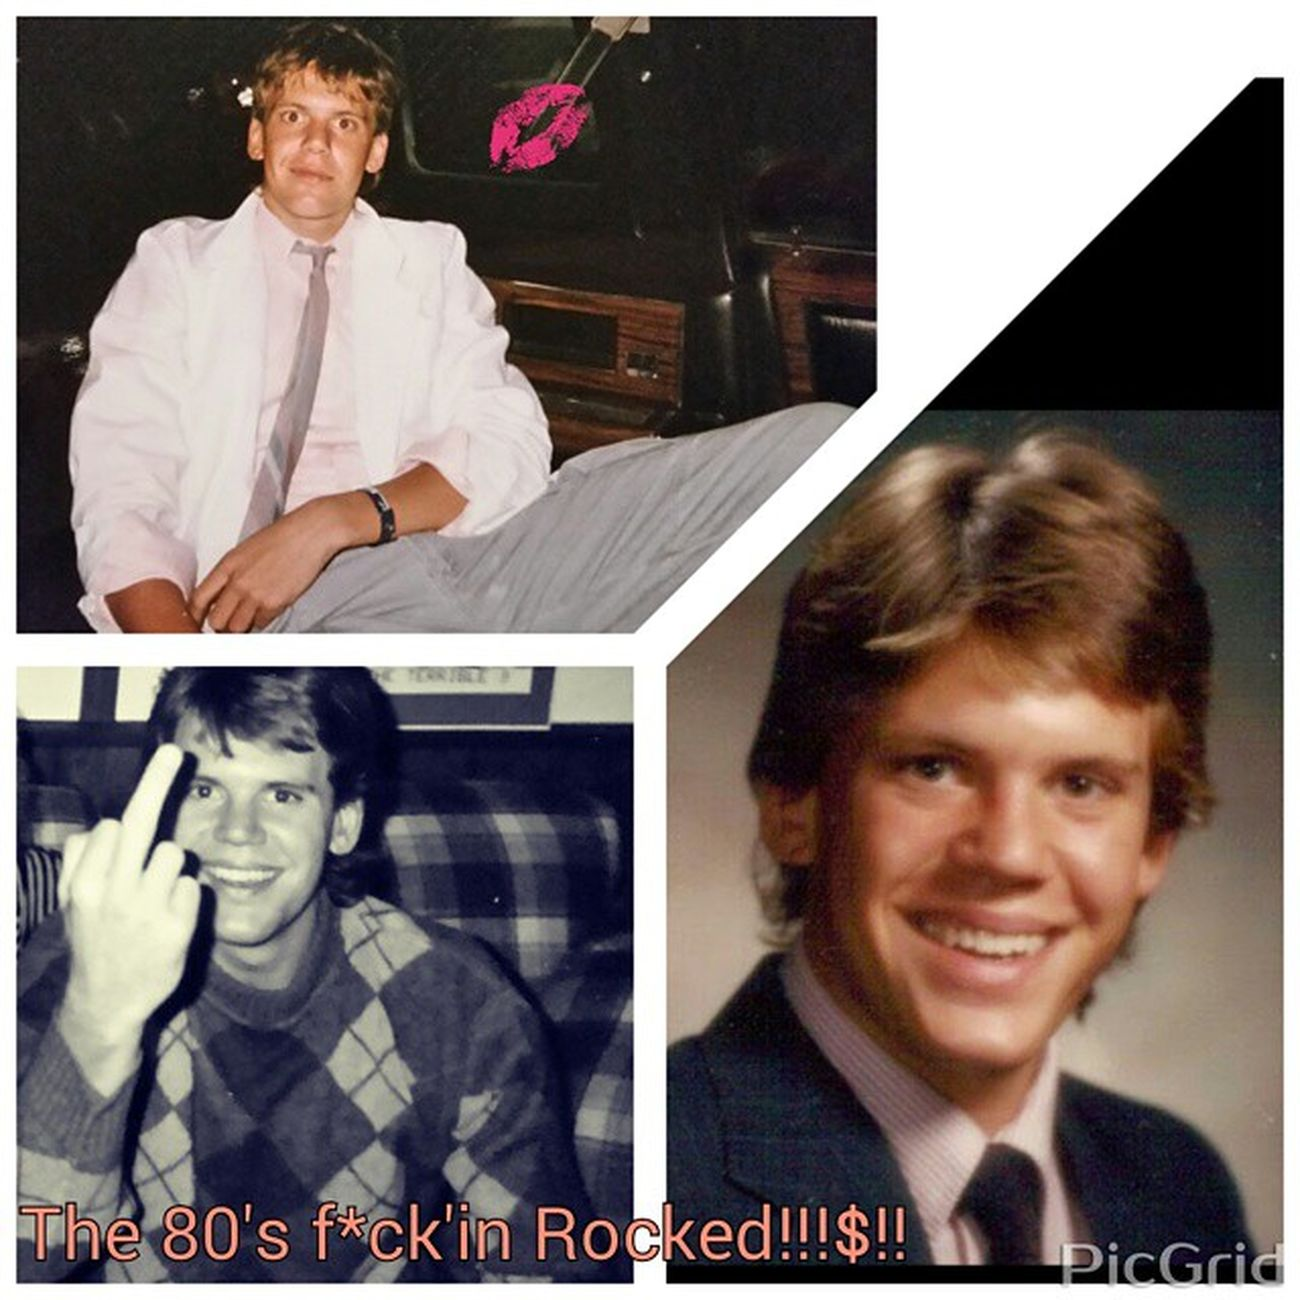 "TBT  throw back Thursday. ...Top pic in a limo, Denver,,, CO 85'(in my Miami Vice suit!!!!?!) Hahaaa...Rt side pic,,,,grad pic 86'....left side pic @ a party 89' .....The 80's Rocked,,,what more can be said!!!?! ""If you want something you've never had,,, then you've got to do something you've never done!!!?!"".... ""With the right attitude anything is possible!!!$!!"" Party TBT  80s NoGutsNoGlory Cutfromadifferentcloth Nextadventure Challengesrlearningtools Rockon Offthehook"